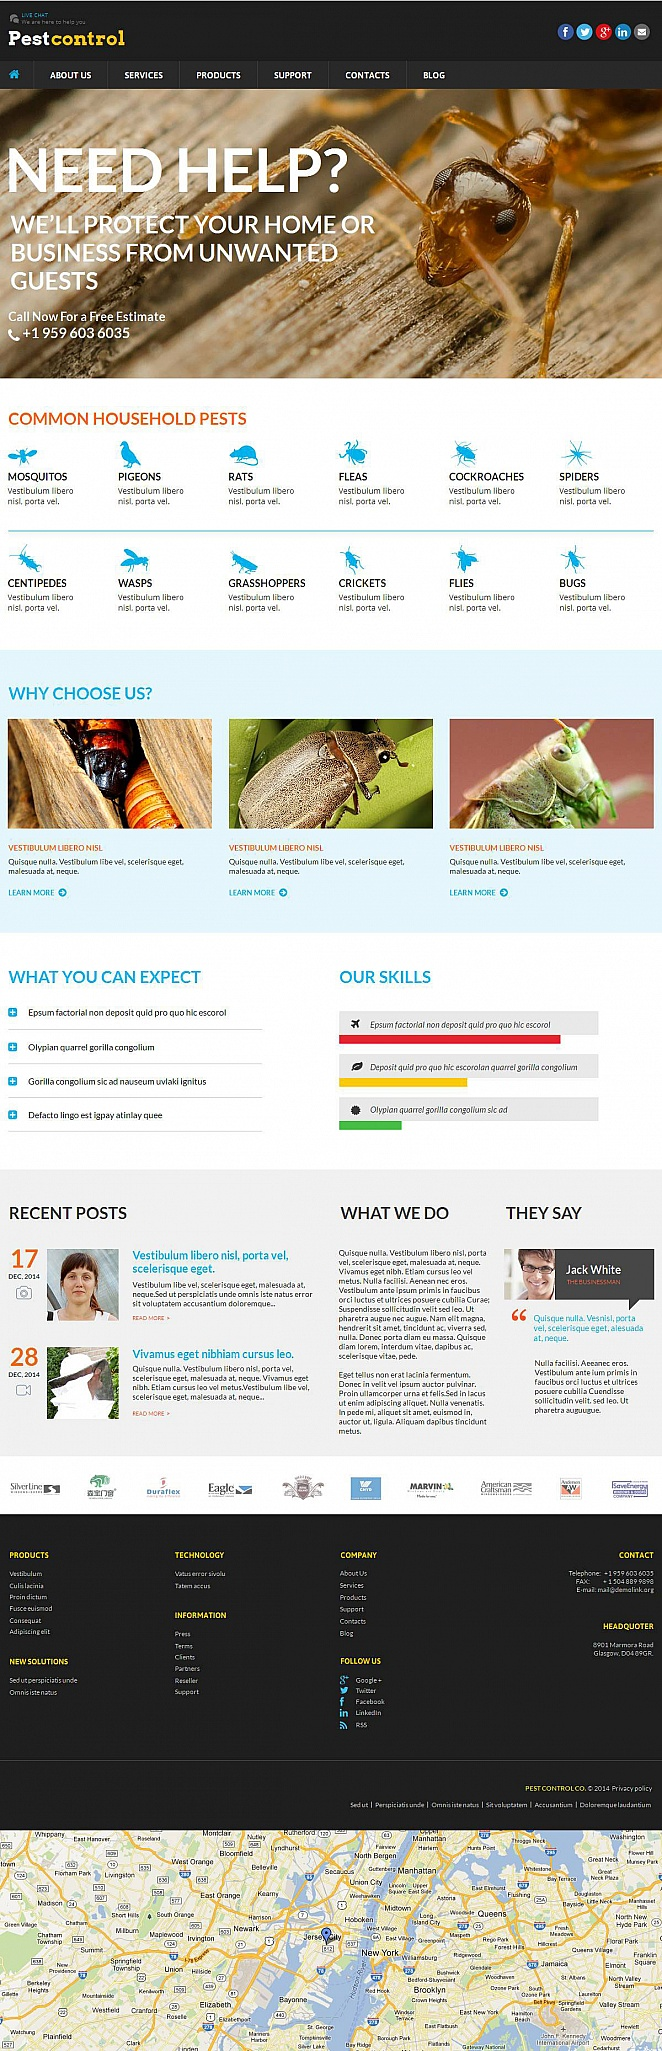 Home Pest Control Website Template - image